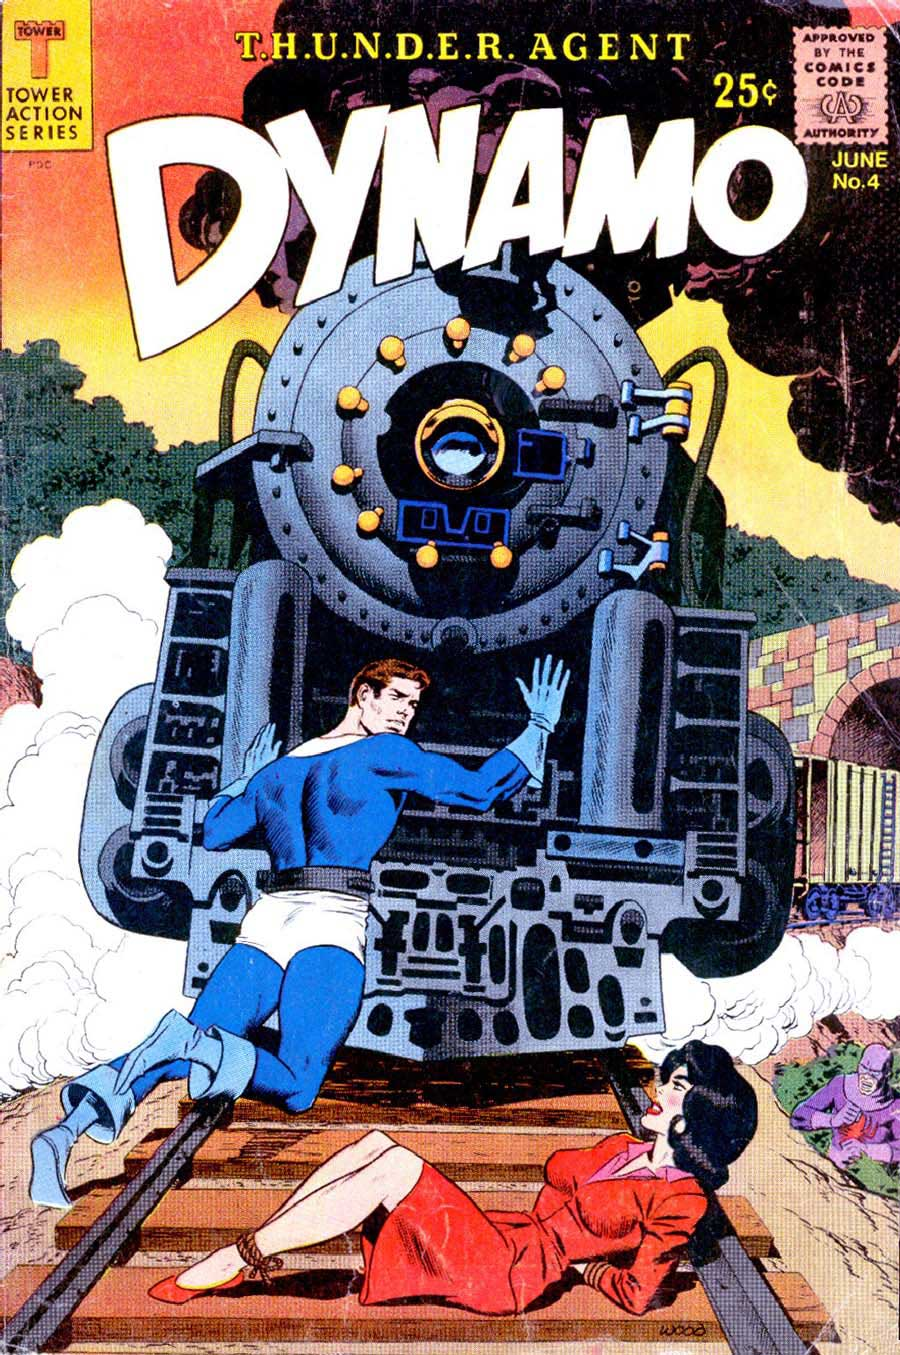 Dynamo v1 #4 tower 1960s silver age comic book cover art by Wally Wood